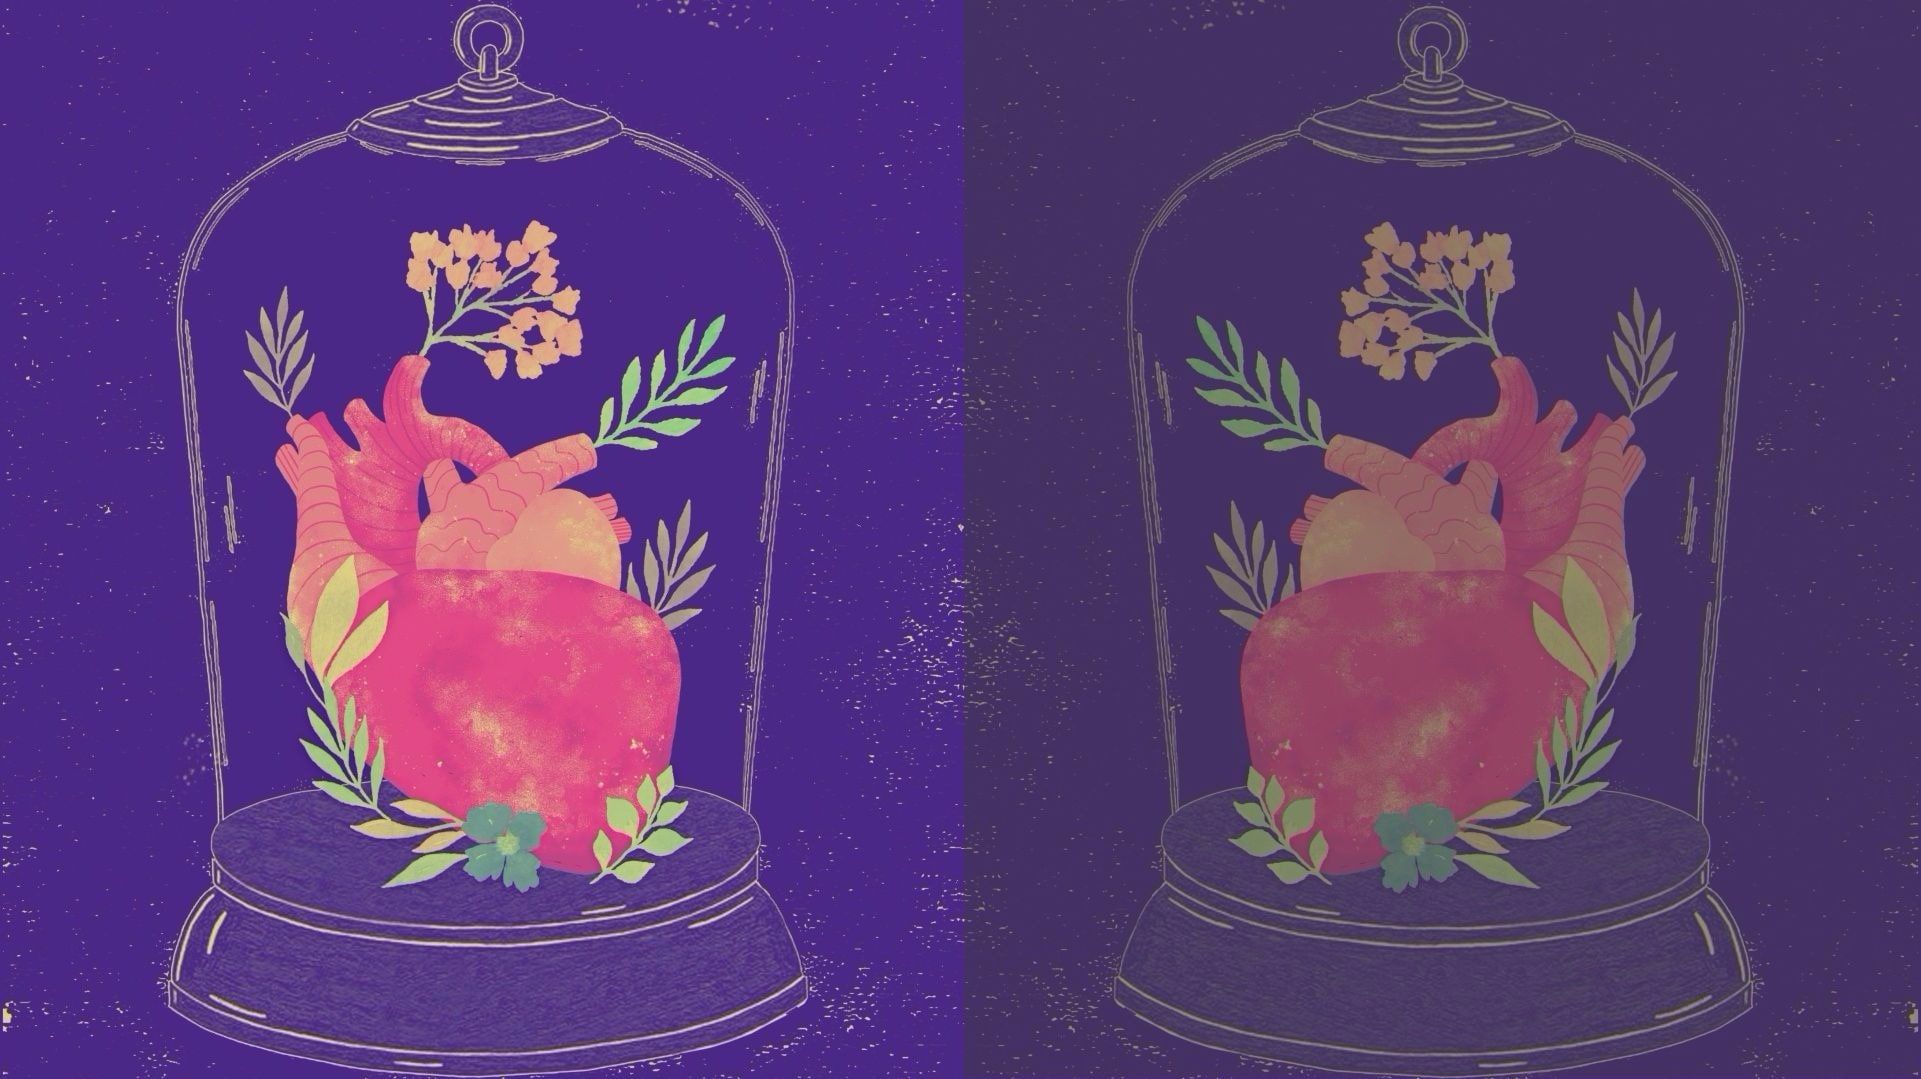 Queer Verse: Two poets introspect on love, loss, and identity